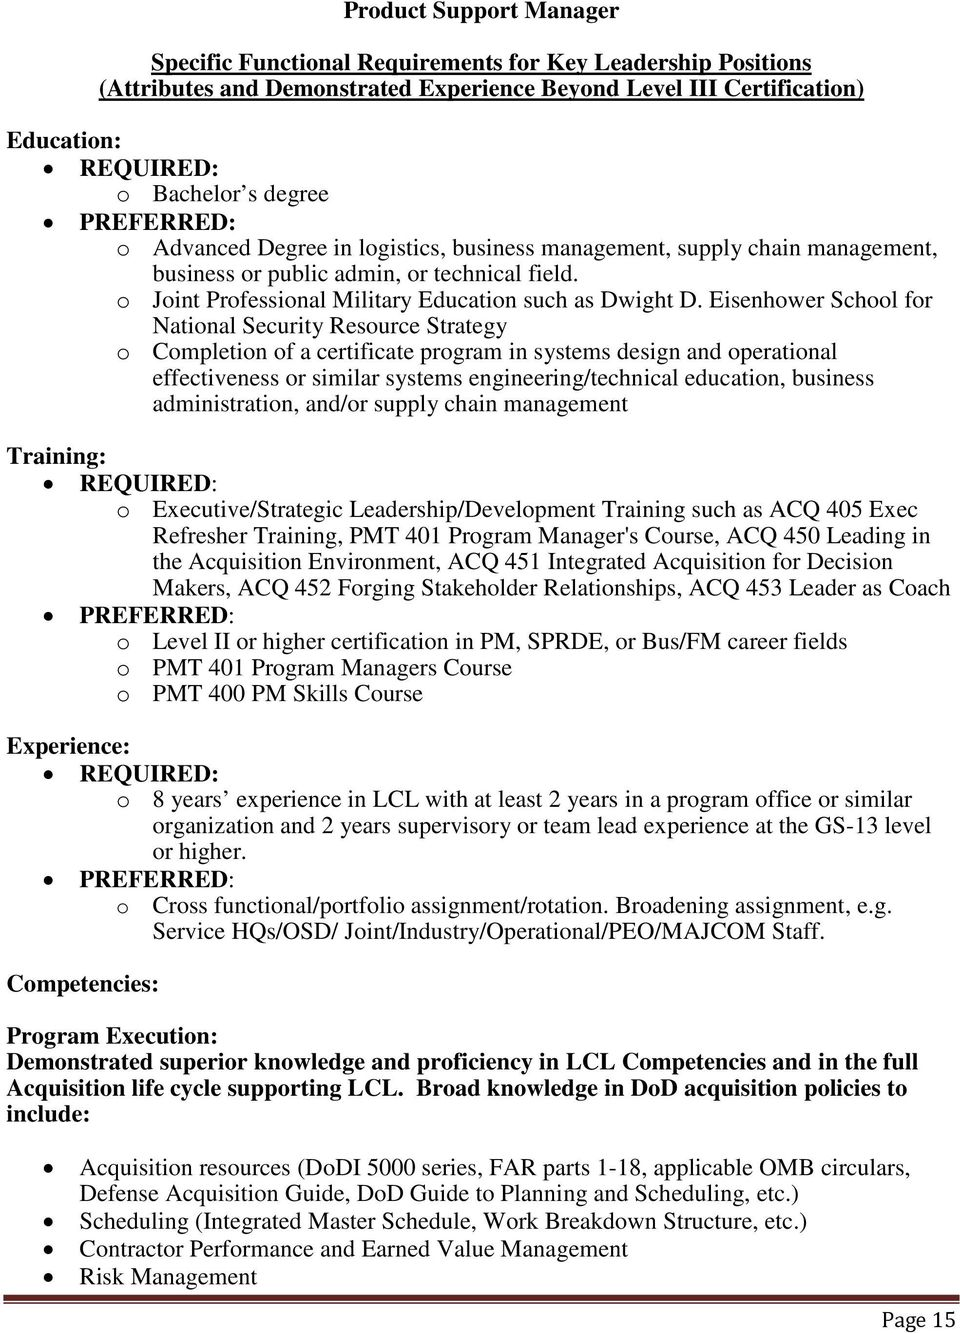 Program Management Preferred O Level Ii Or Iii Certification In A